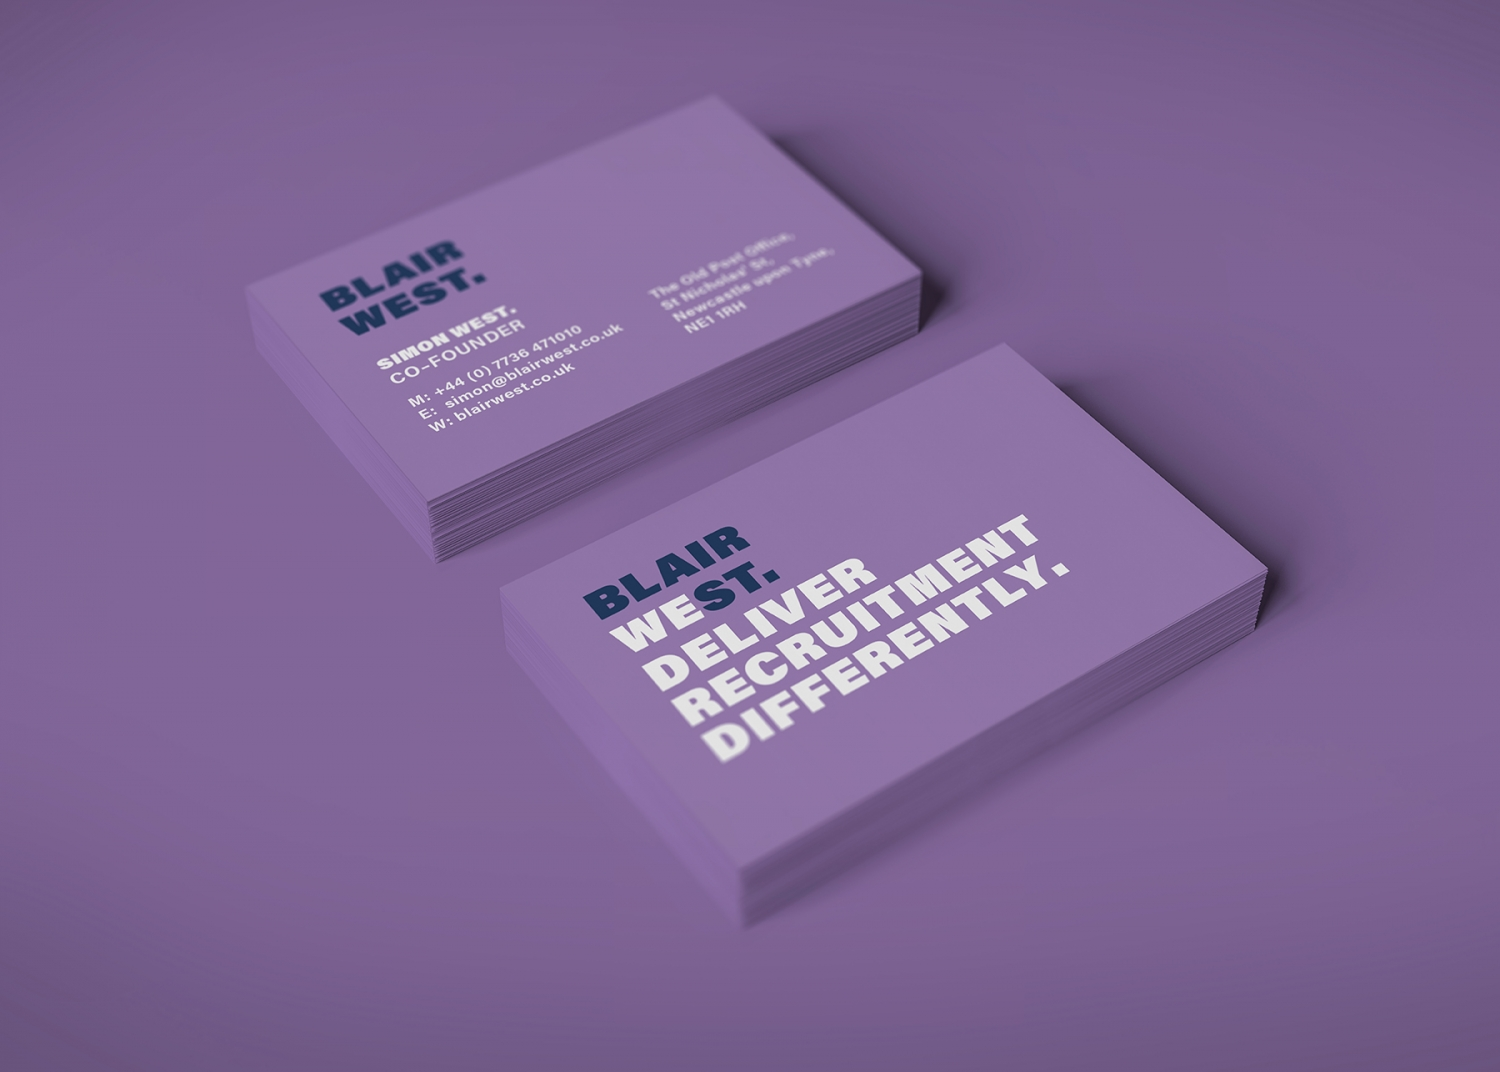 Blair West brand identity, logo and digital campaign for recruitment agency by Altogether Creative.